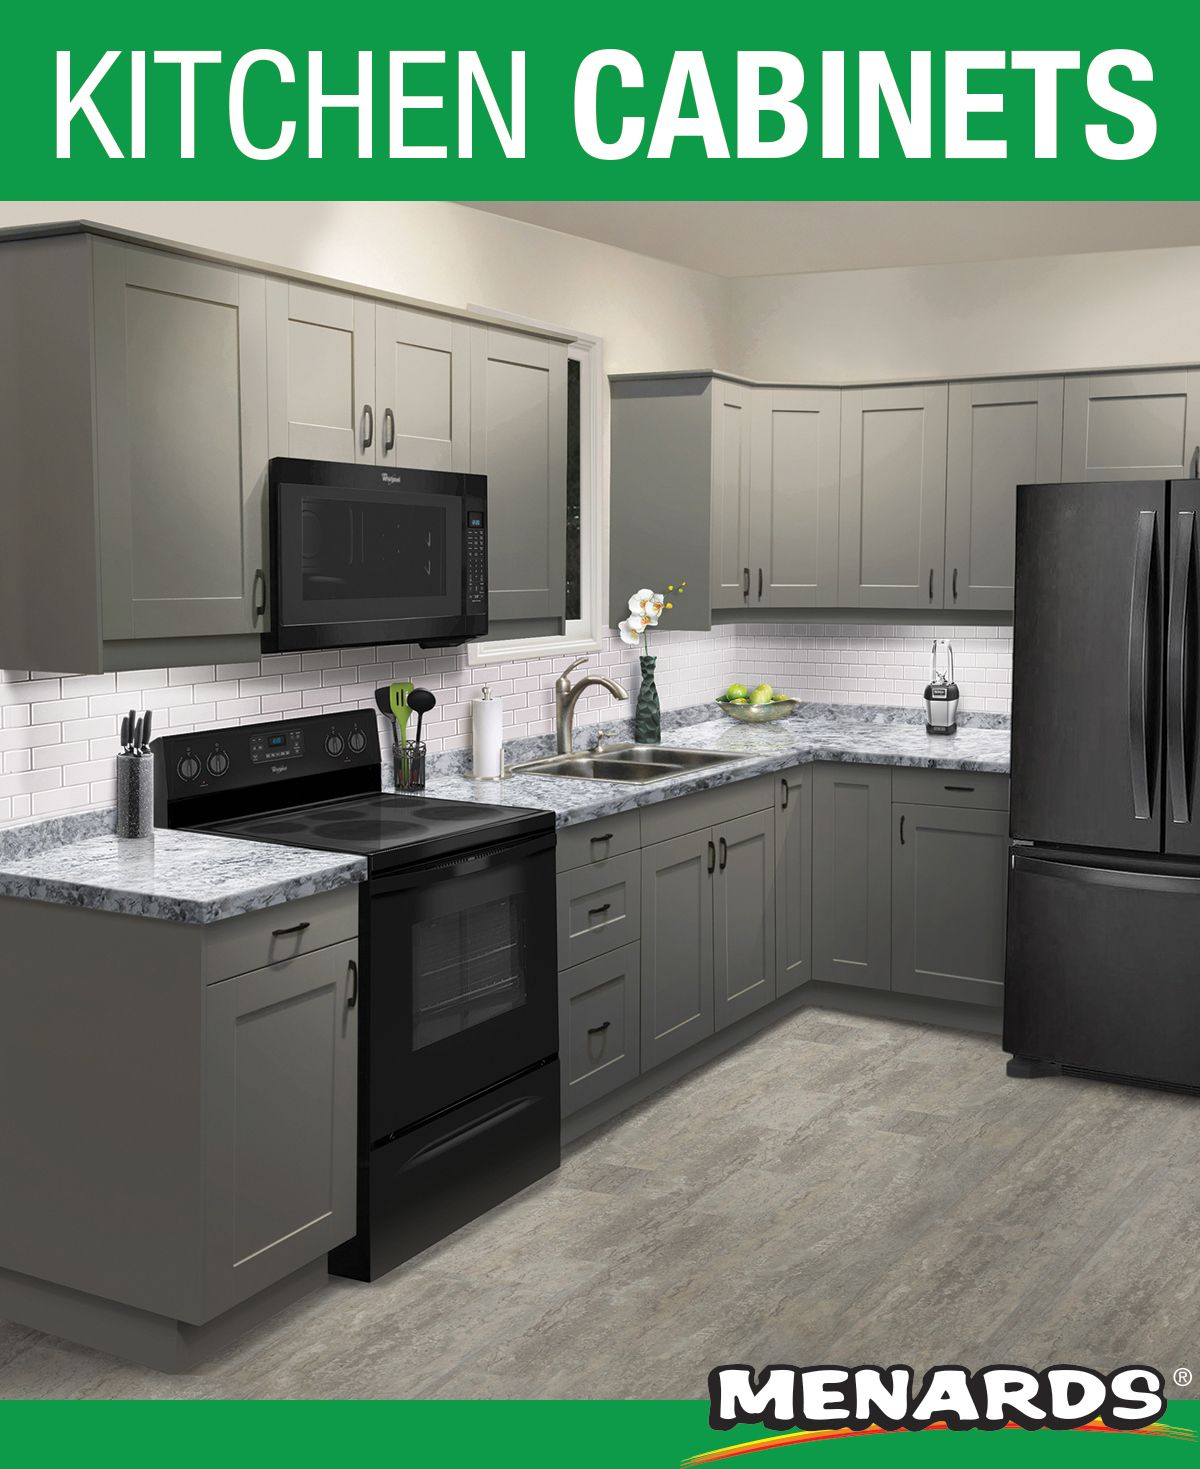 Cardell Cornerstone Collection Lakeridge Honey Spice 19 L Kitchen Cabinets Only In 2020 Menards Kitchen Kitchen Backsplash Photos Kitchen Cabinets